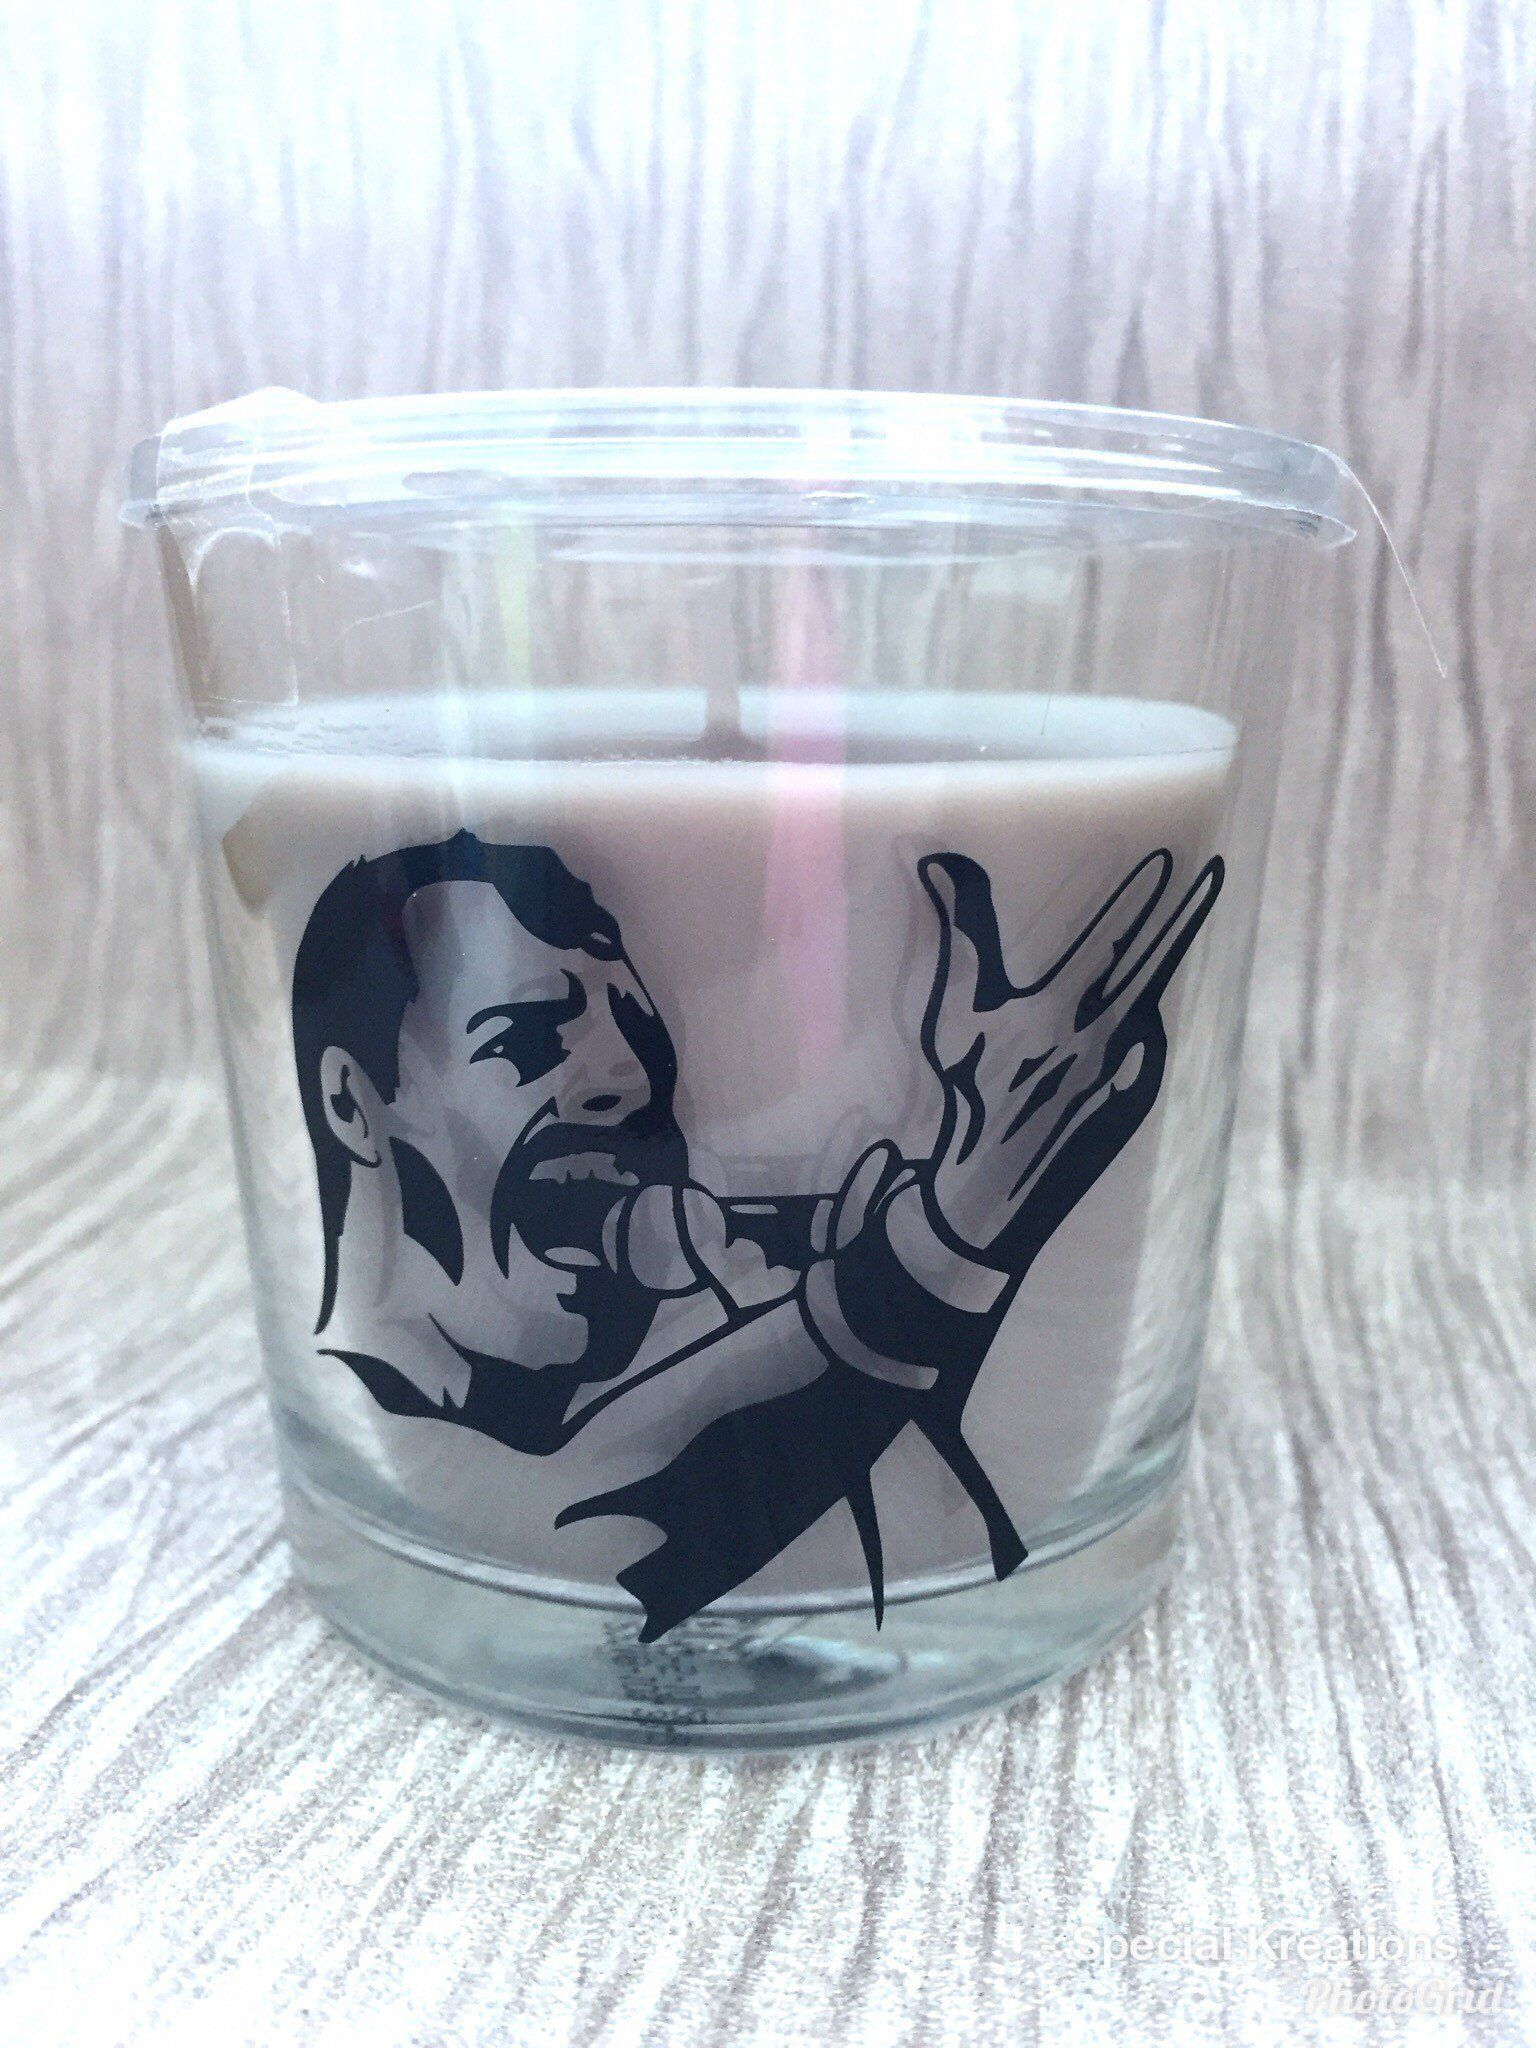 Queen Freddie Mercury Candle Gift Christmas Birthday By SpecialKreations1 On Etsy